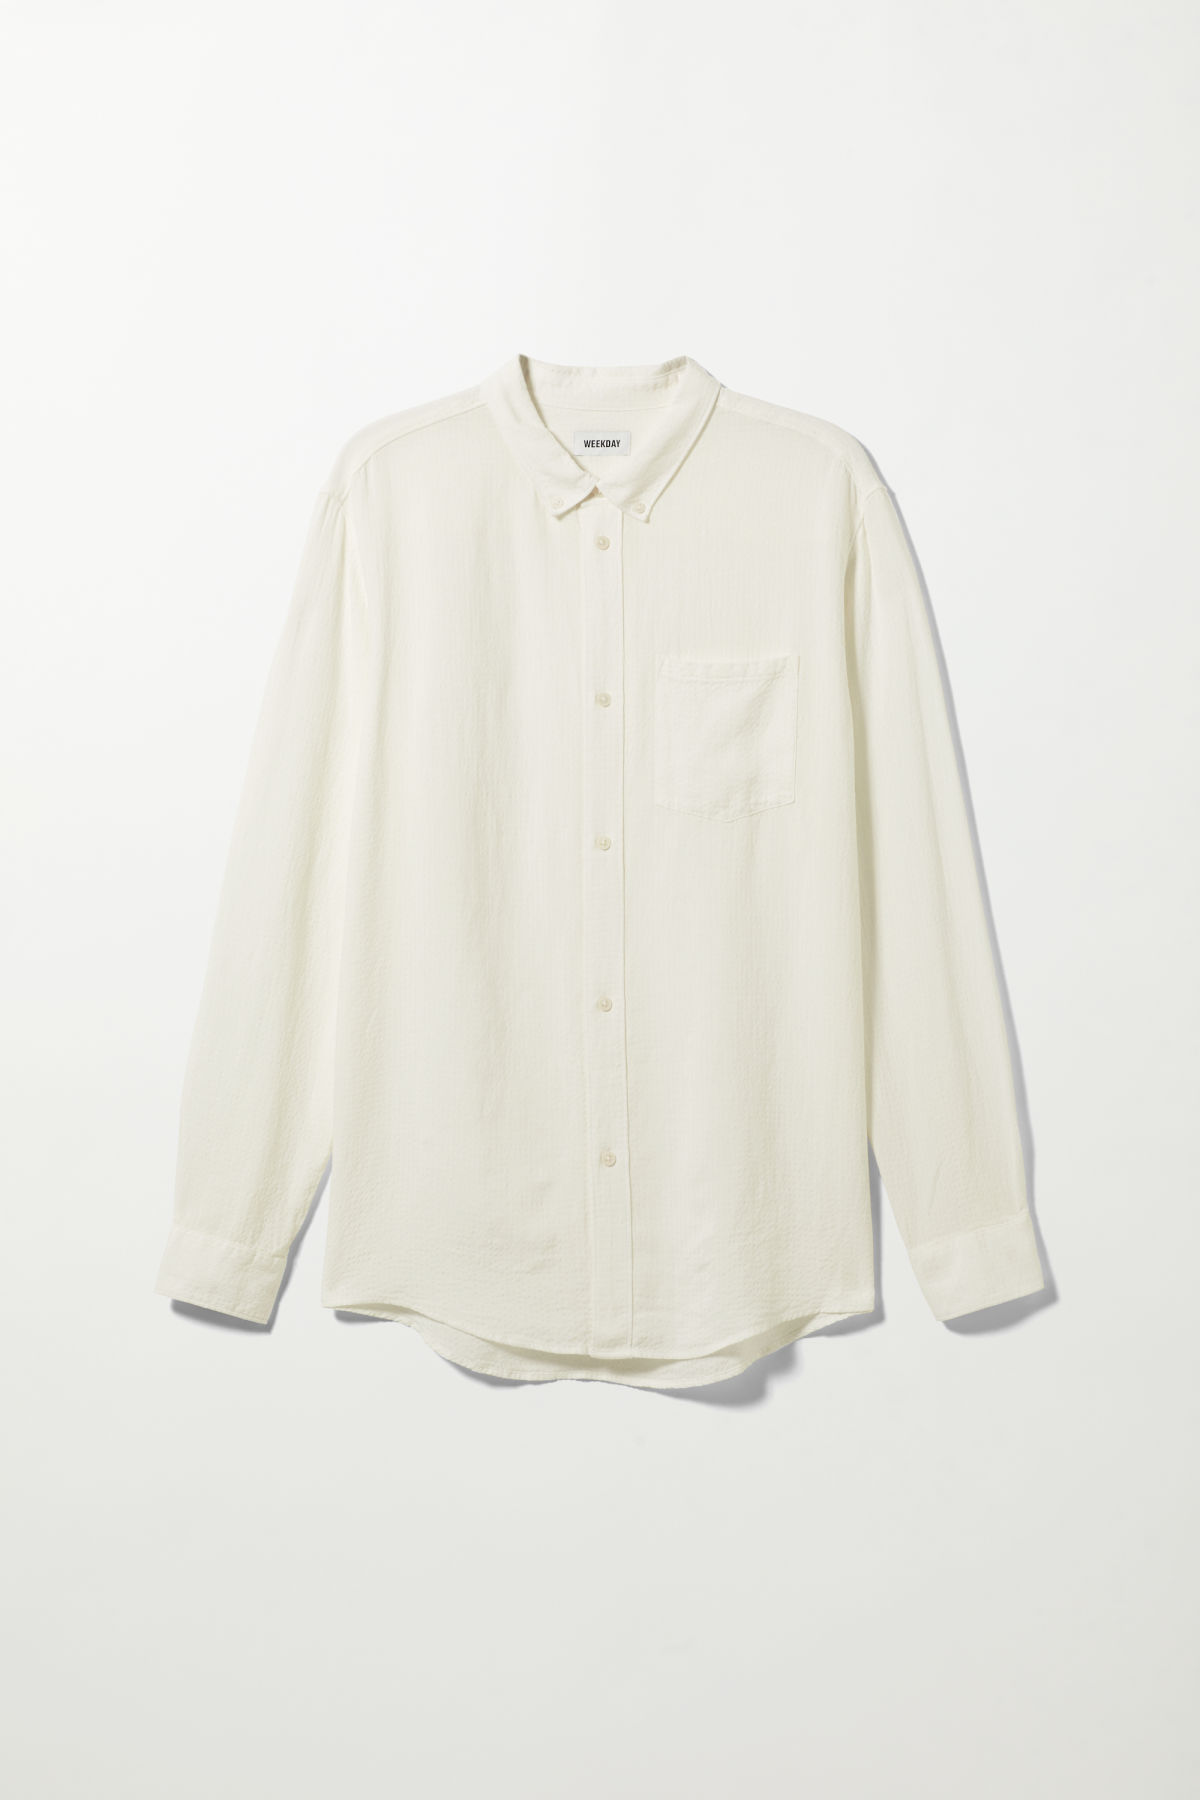 Malcon Structured Shirt - White